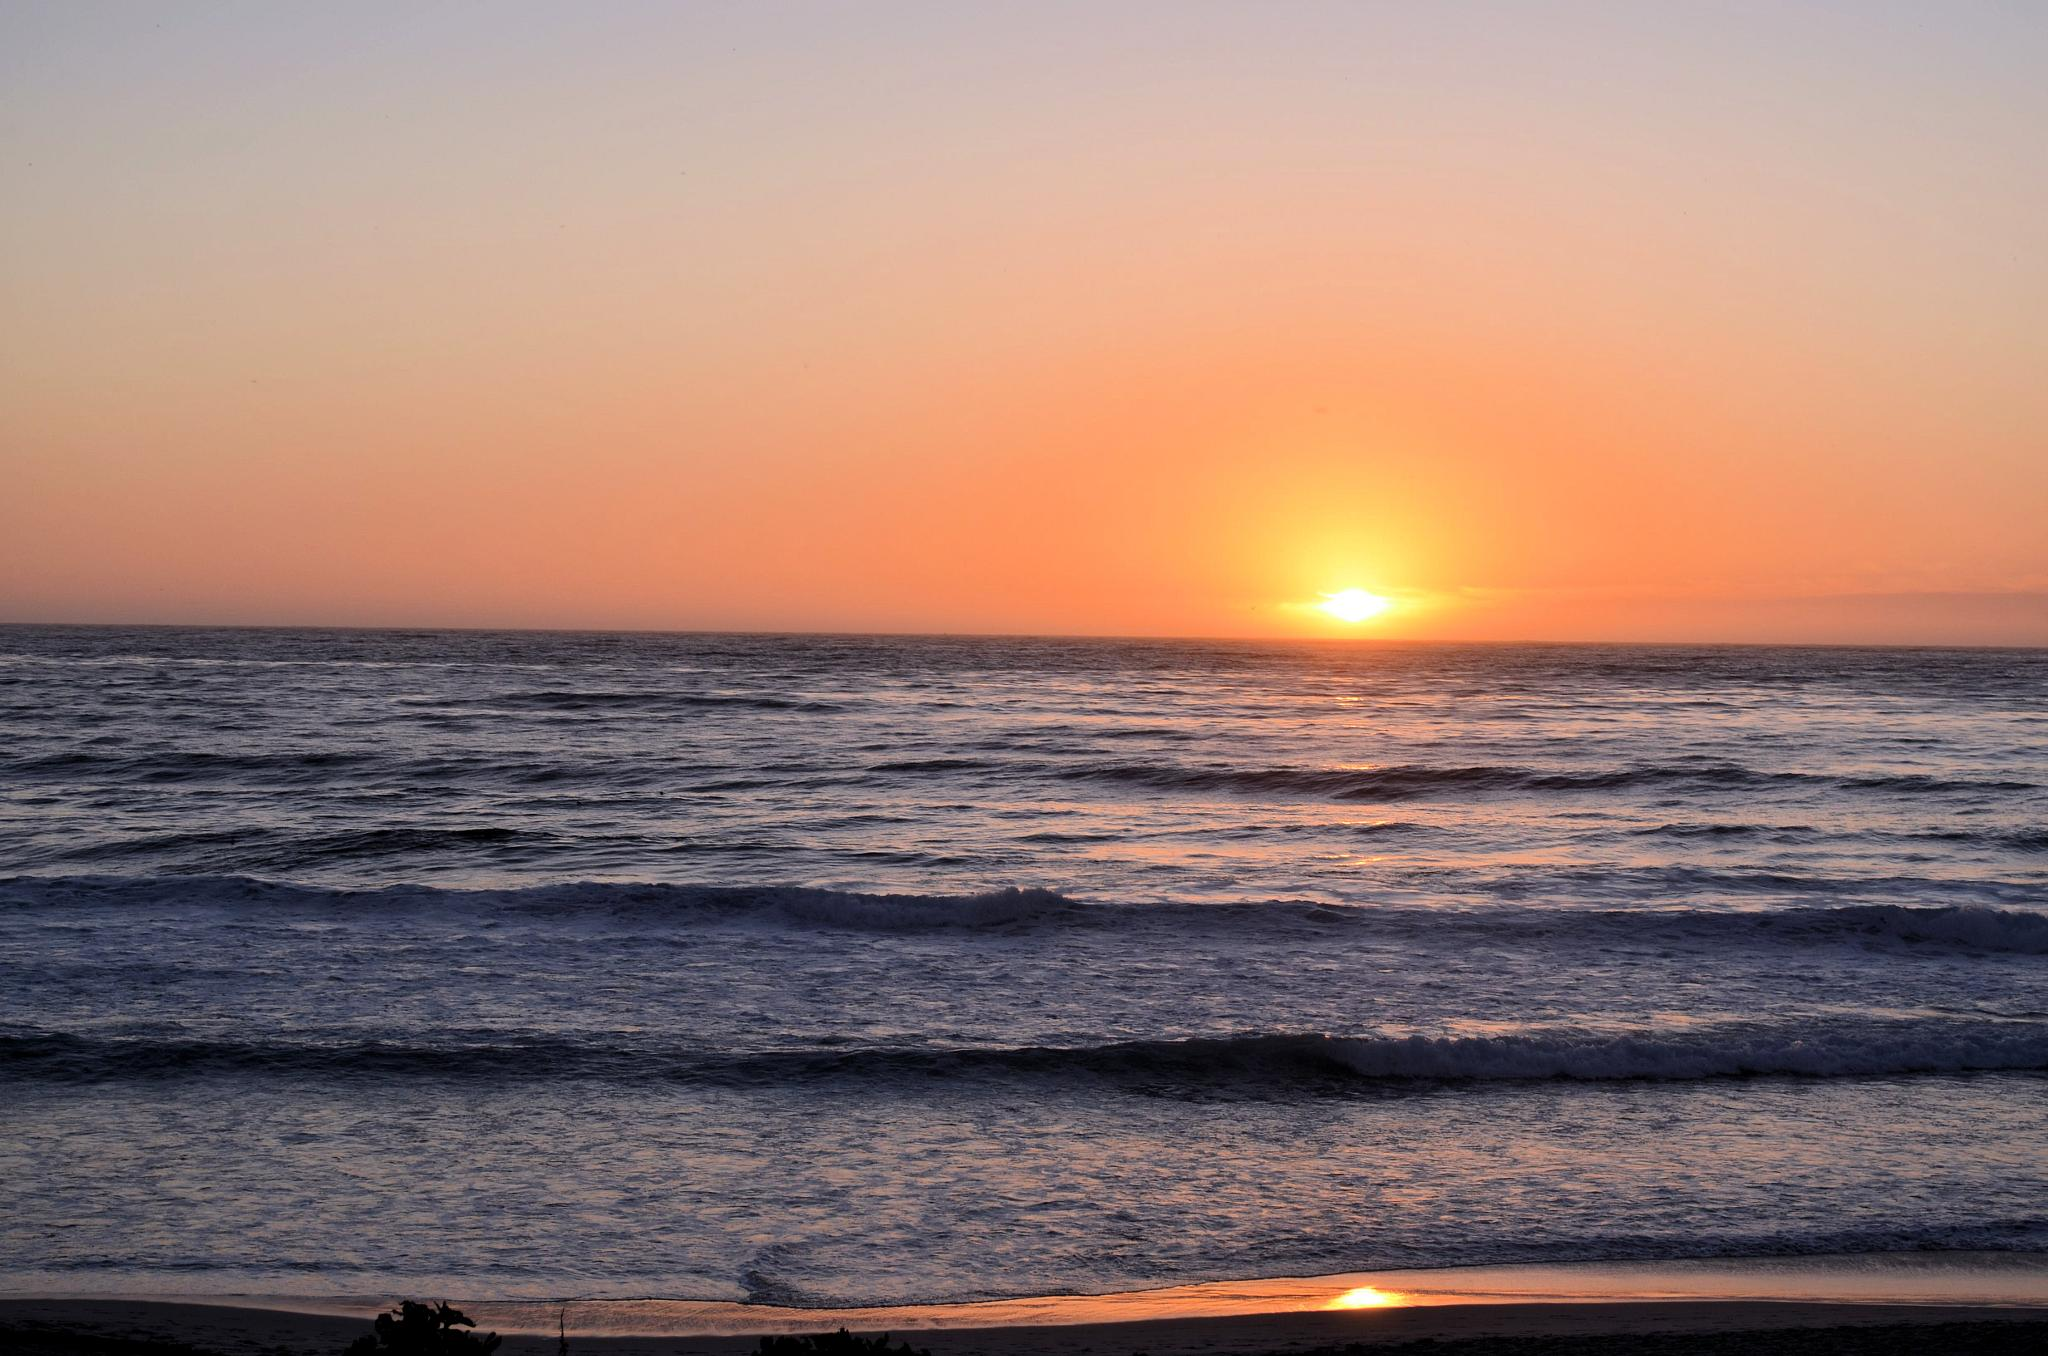 Sunset on the Pacific Coast by Stephanie Miller